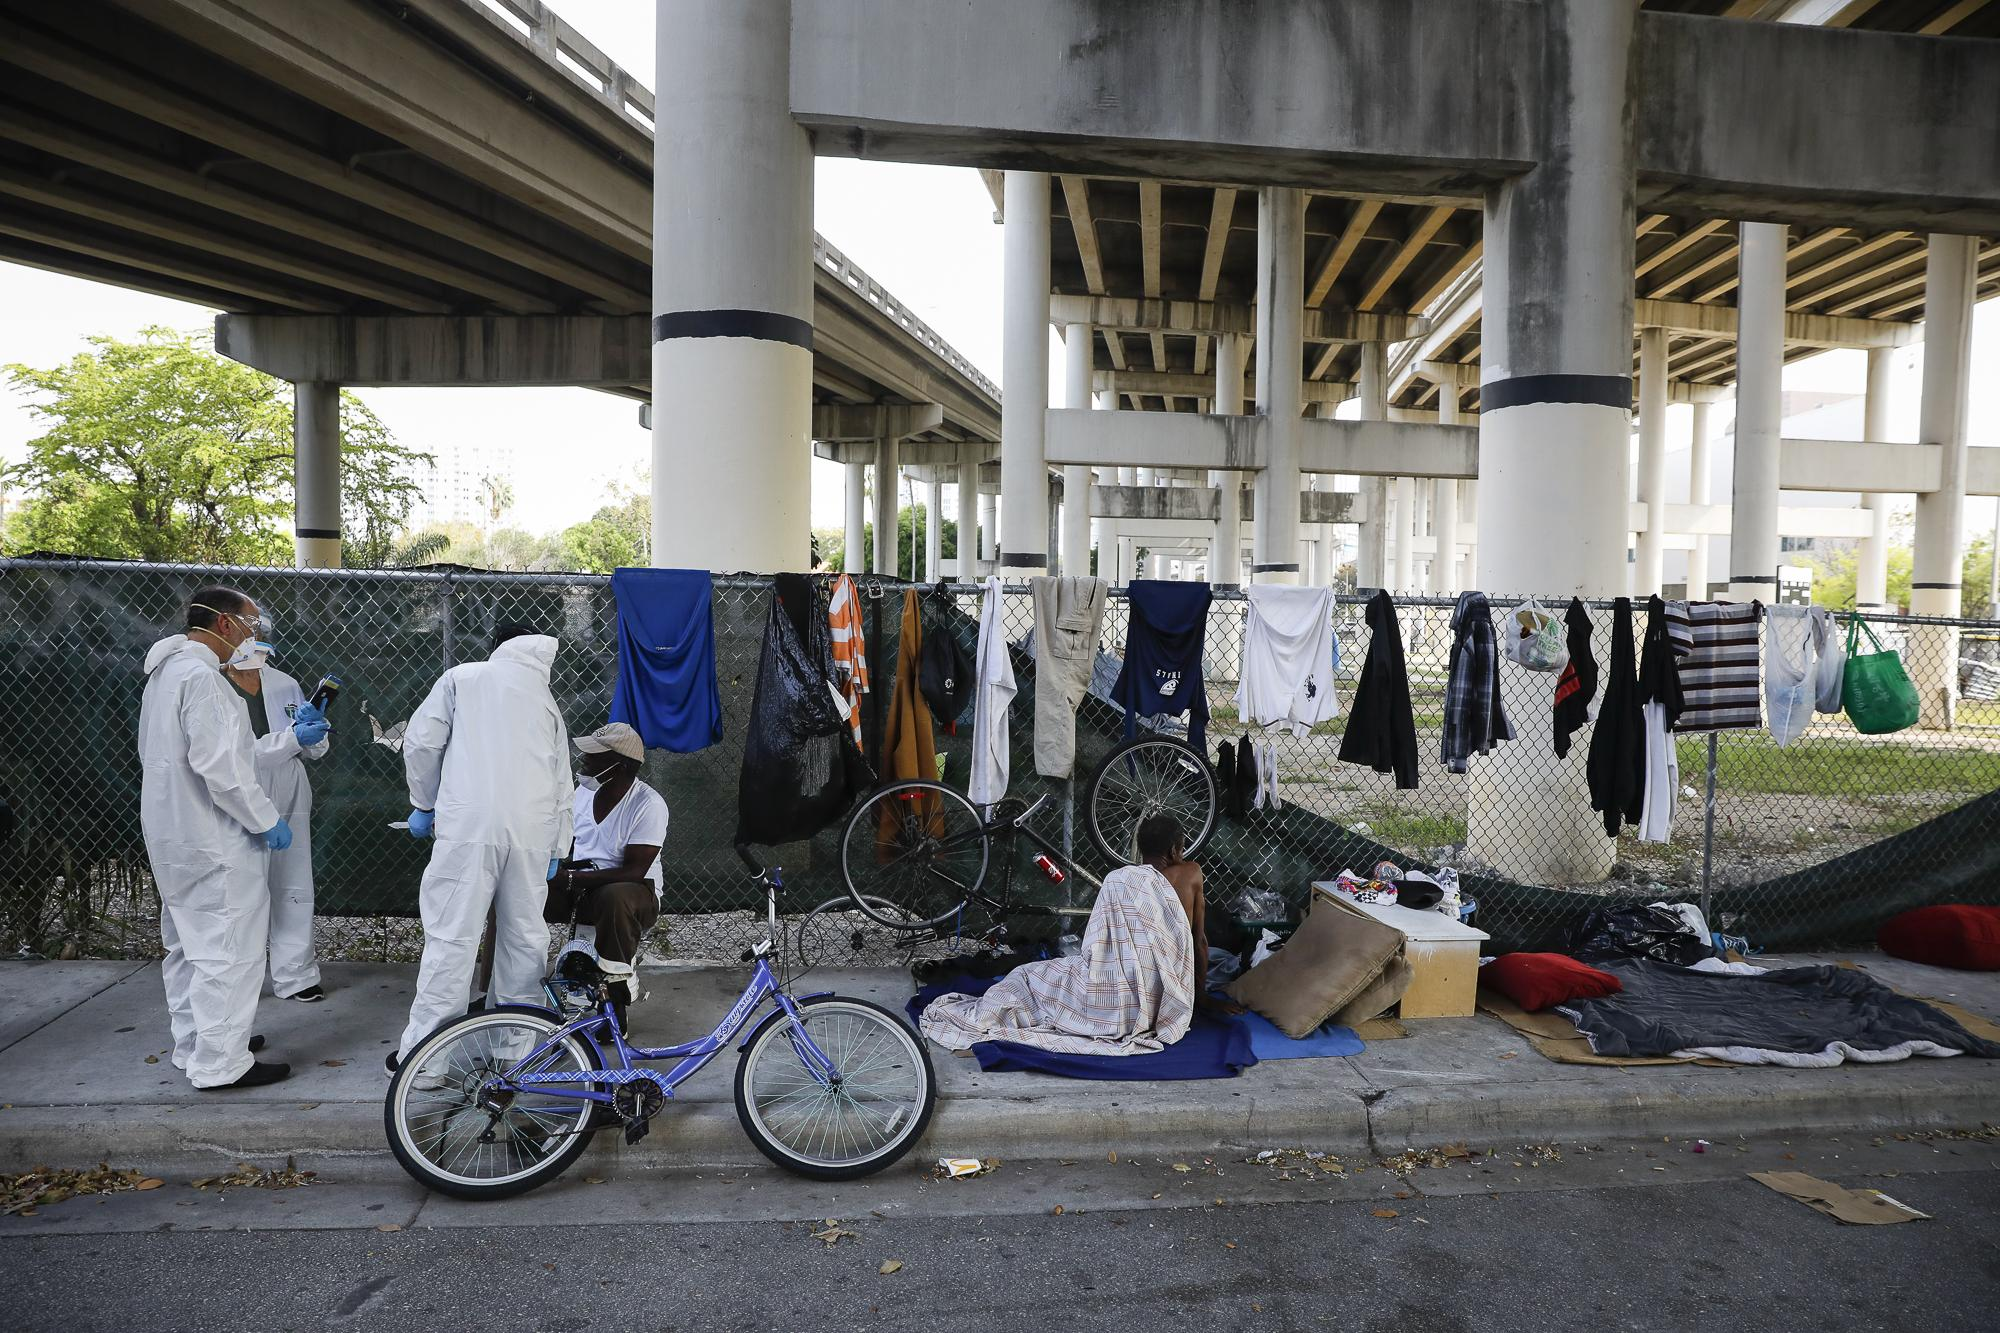 Workers talk with a homeless man during a Miami-Dade County testing operation for the coronavirus disease (COVID-19), in downtown Miami, Florida, U.S., April 16, 2020. REUTERS/Marco Bello